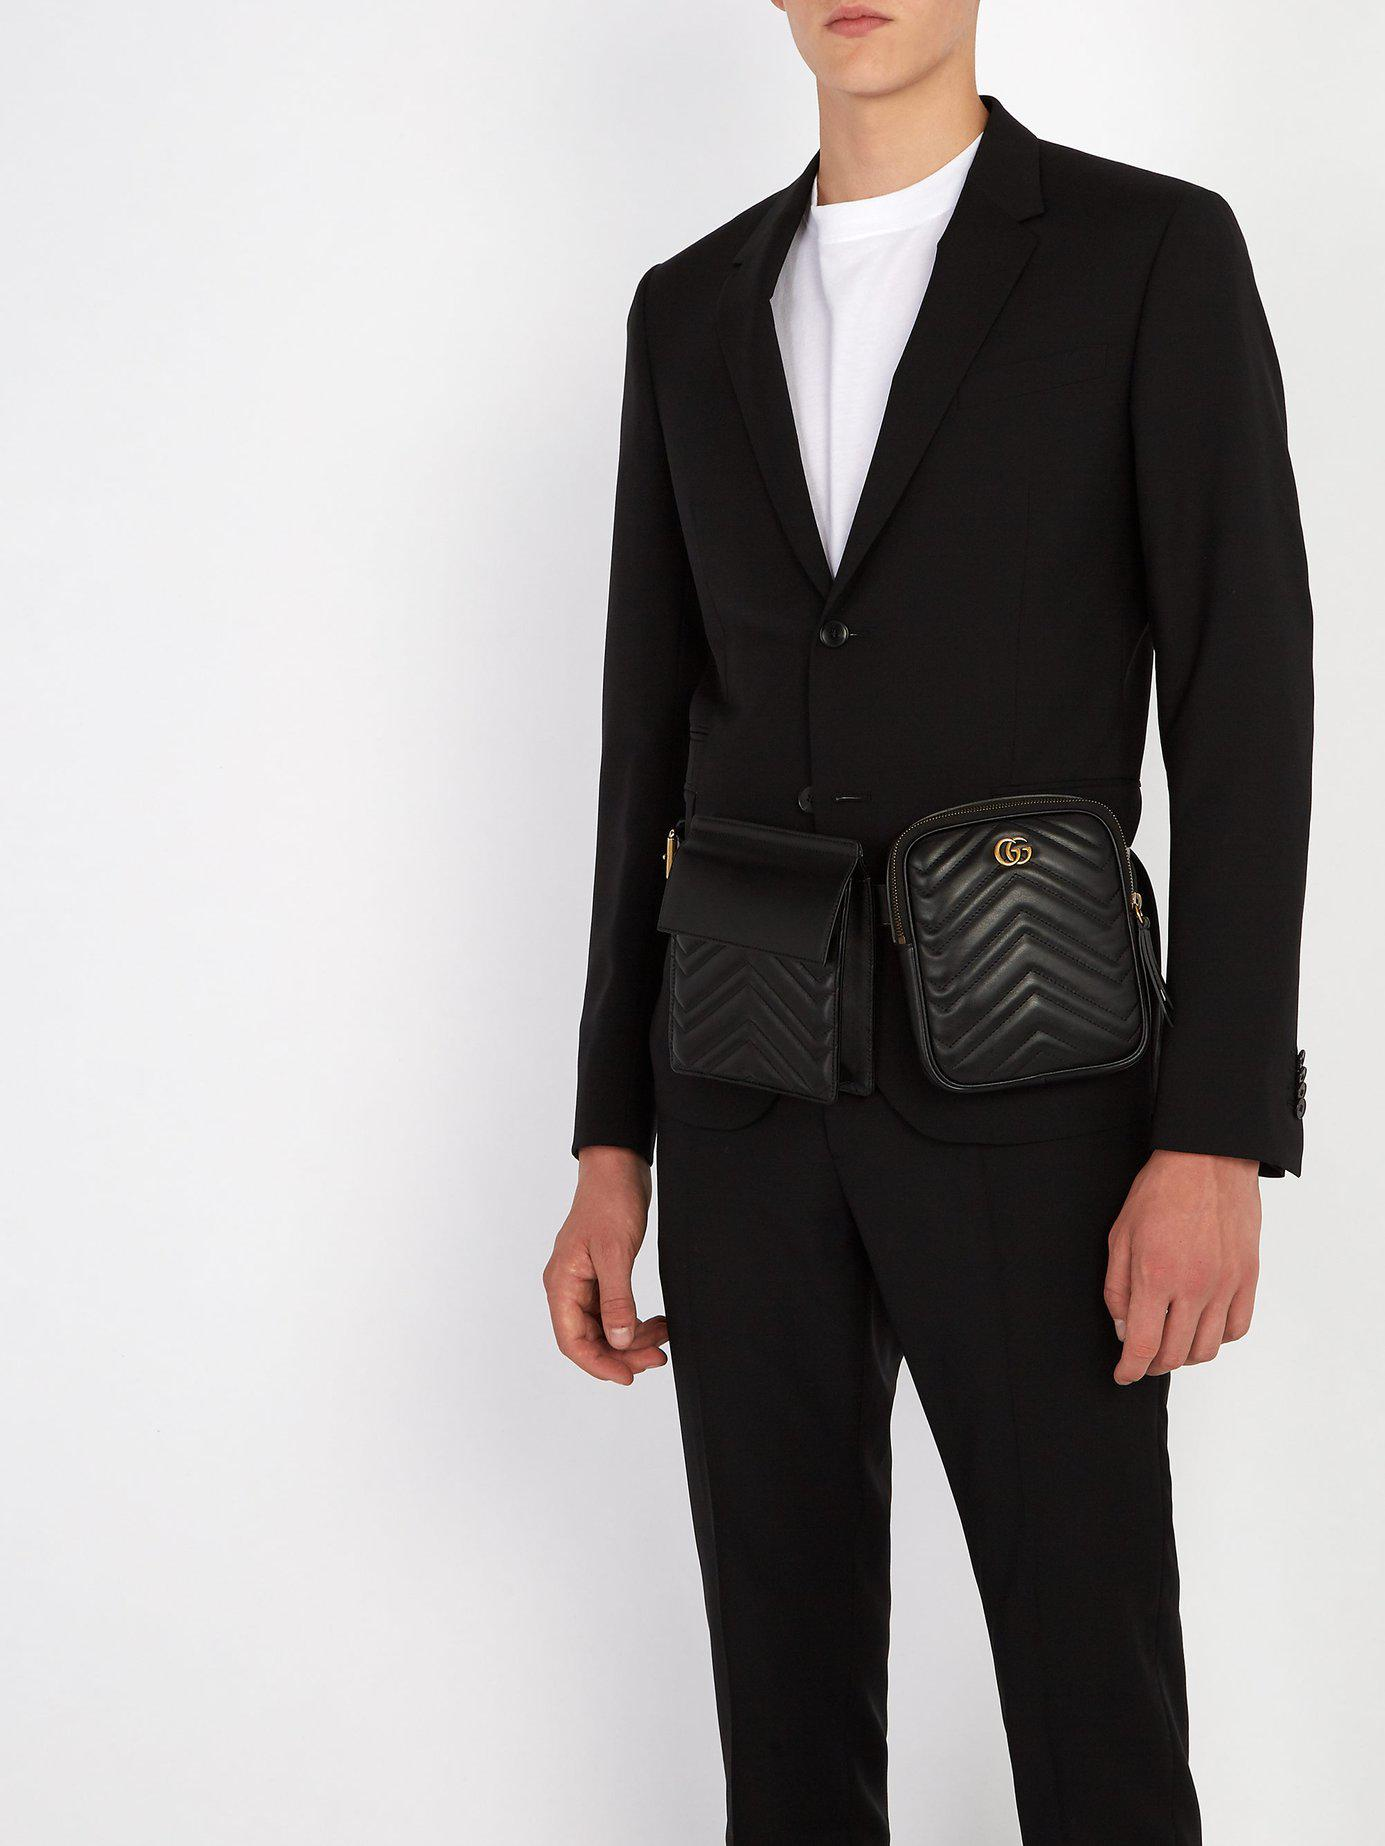 85604dc02fc Gucci Gg Marmont Leather Belt Bag in Black for Men - Lyst